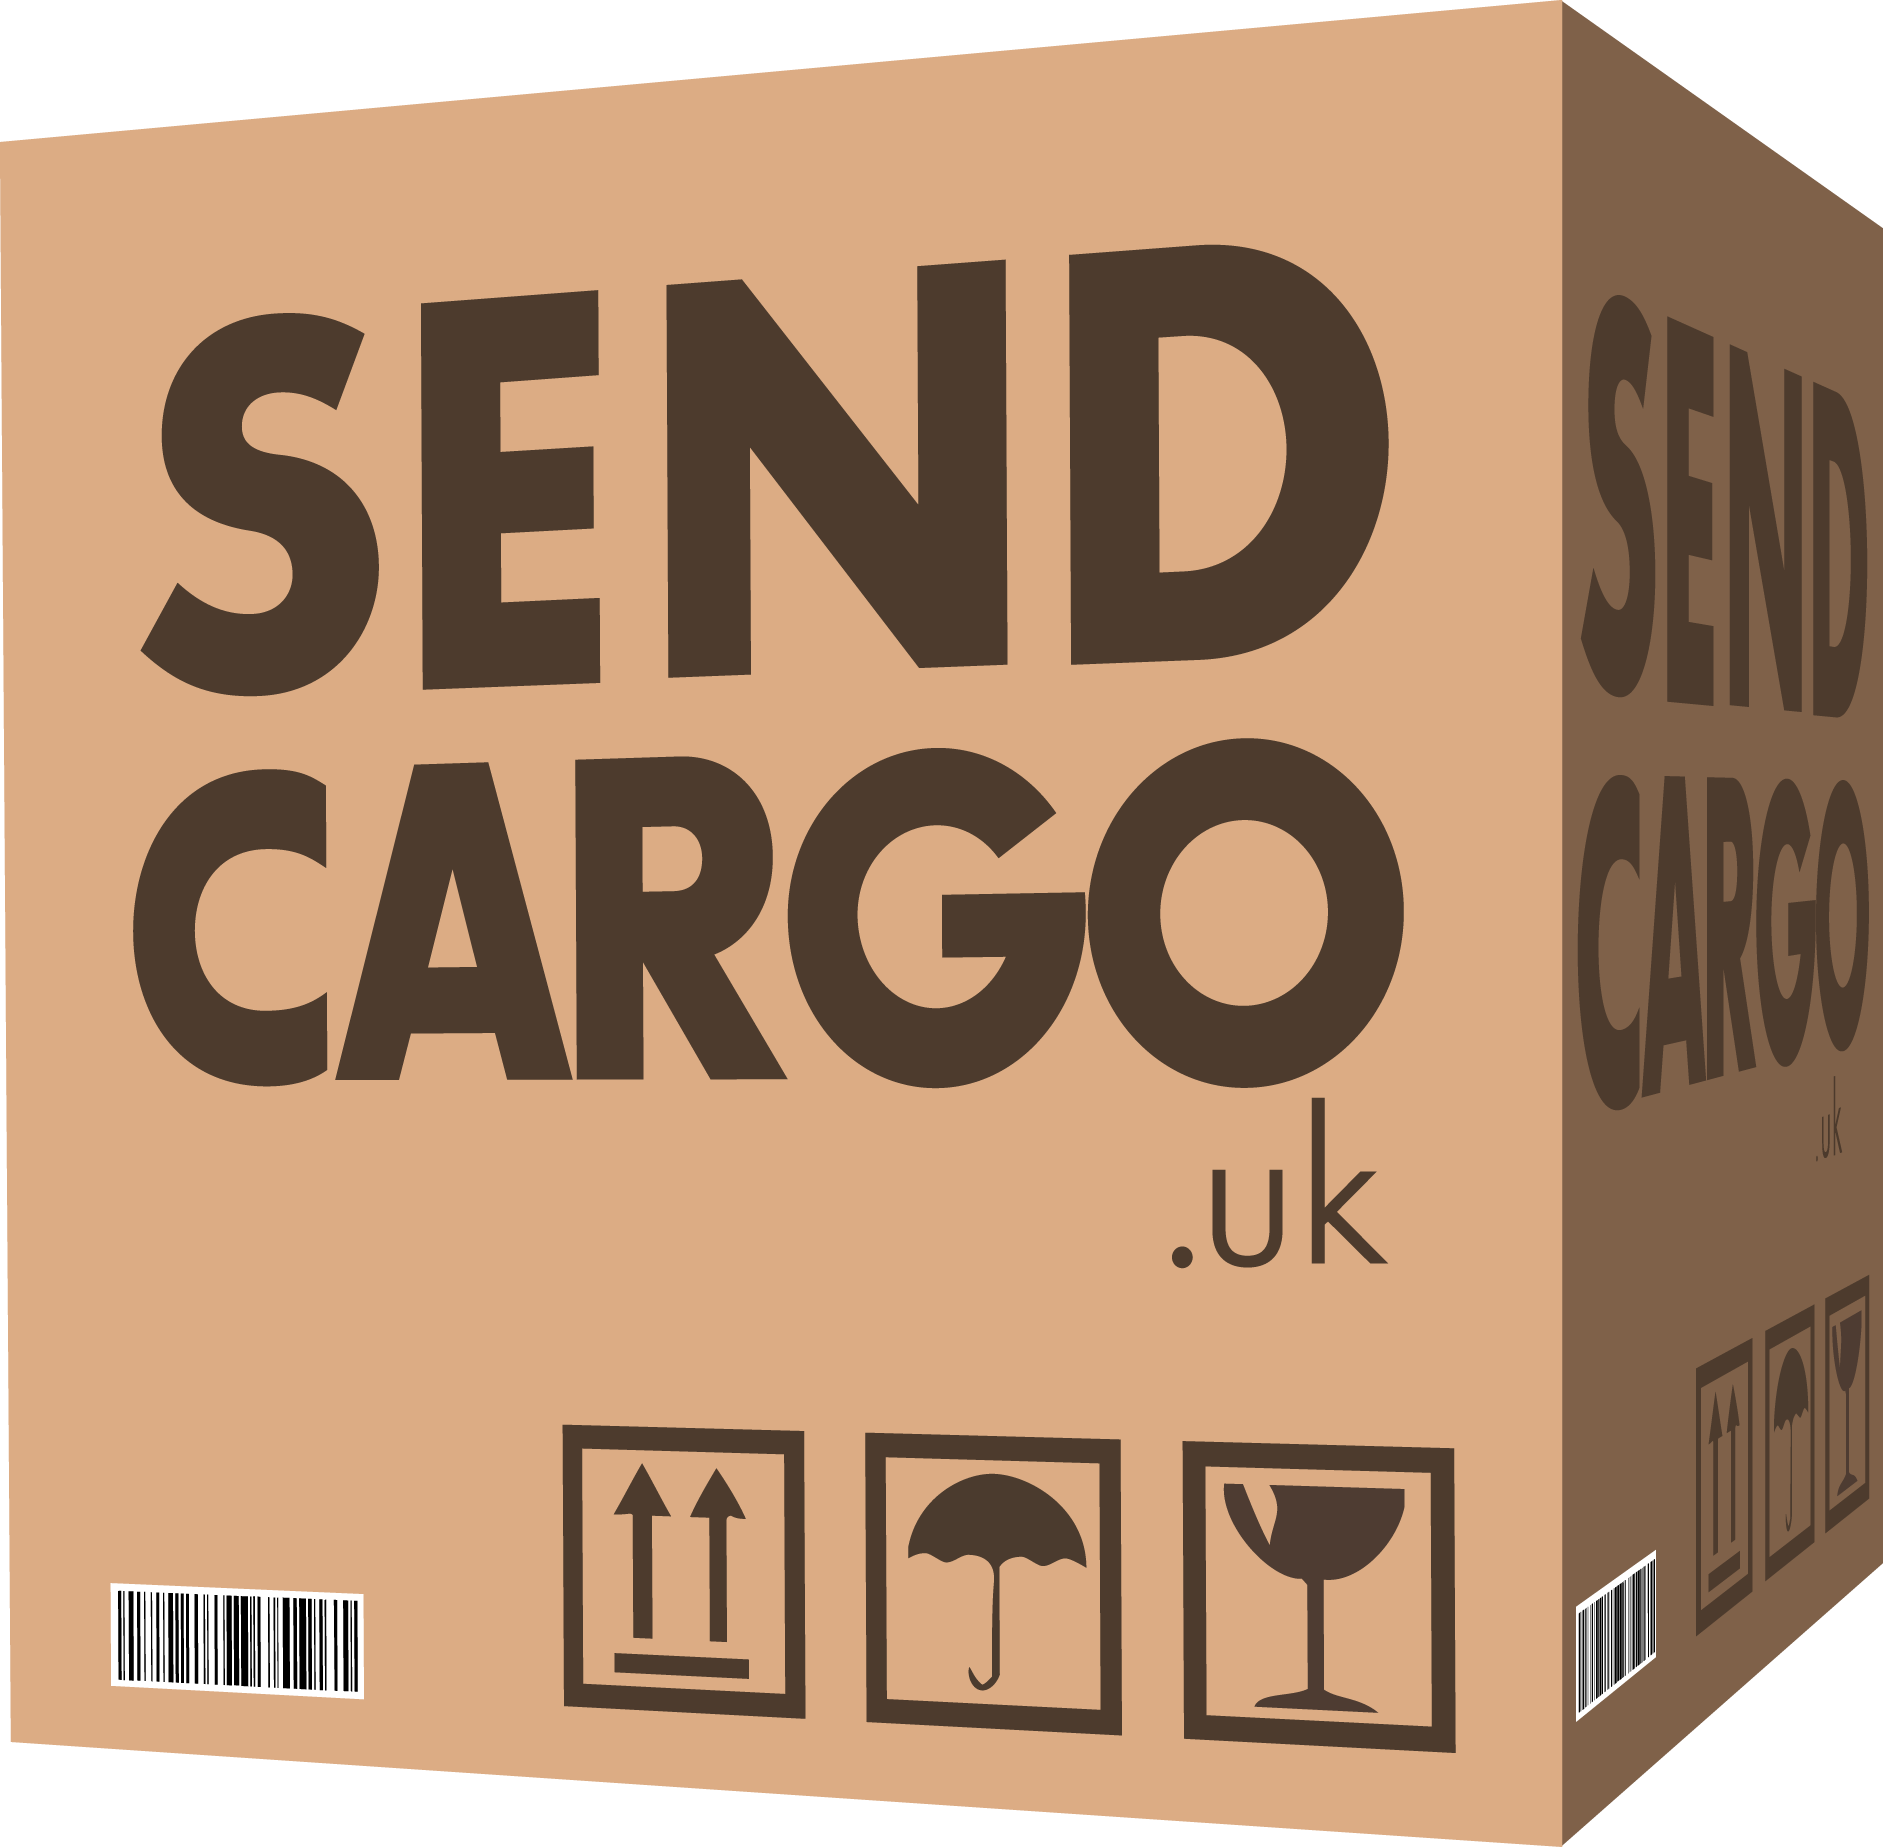 Send Cargo UK to Bangladesh Shopping